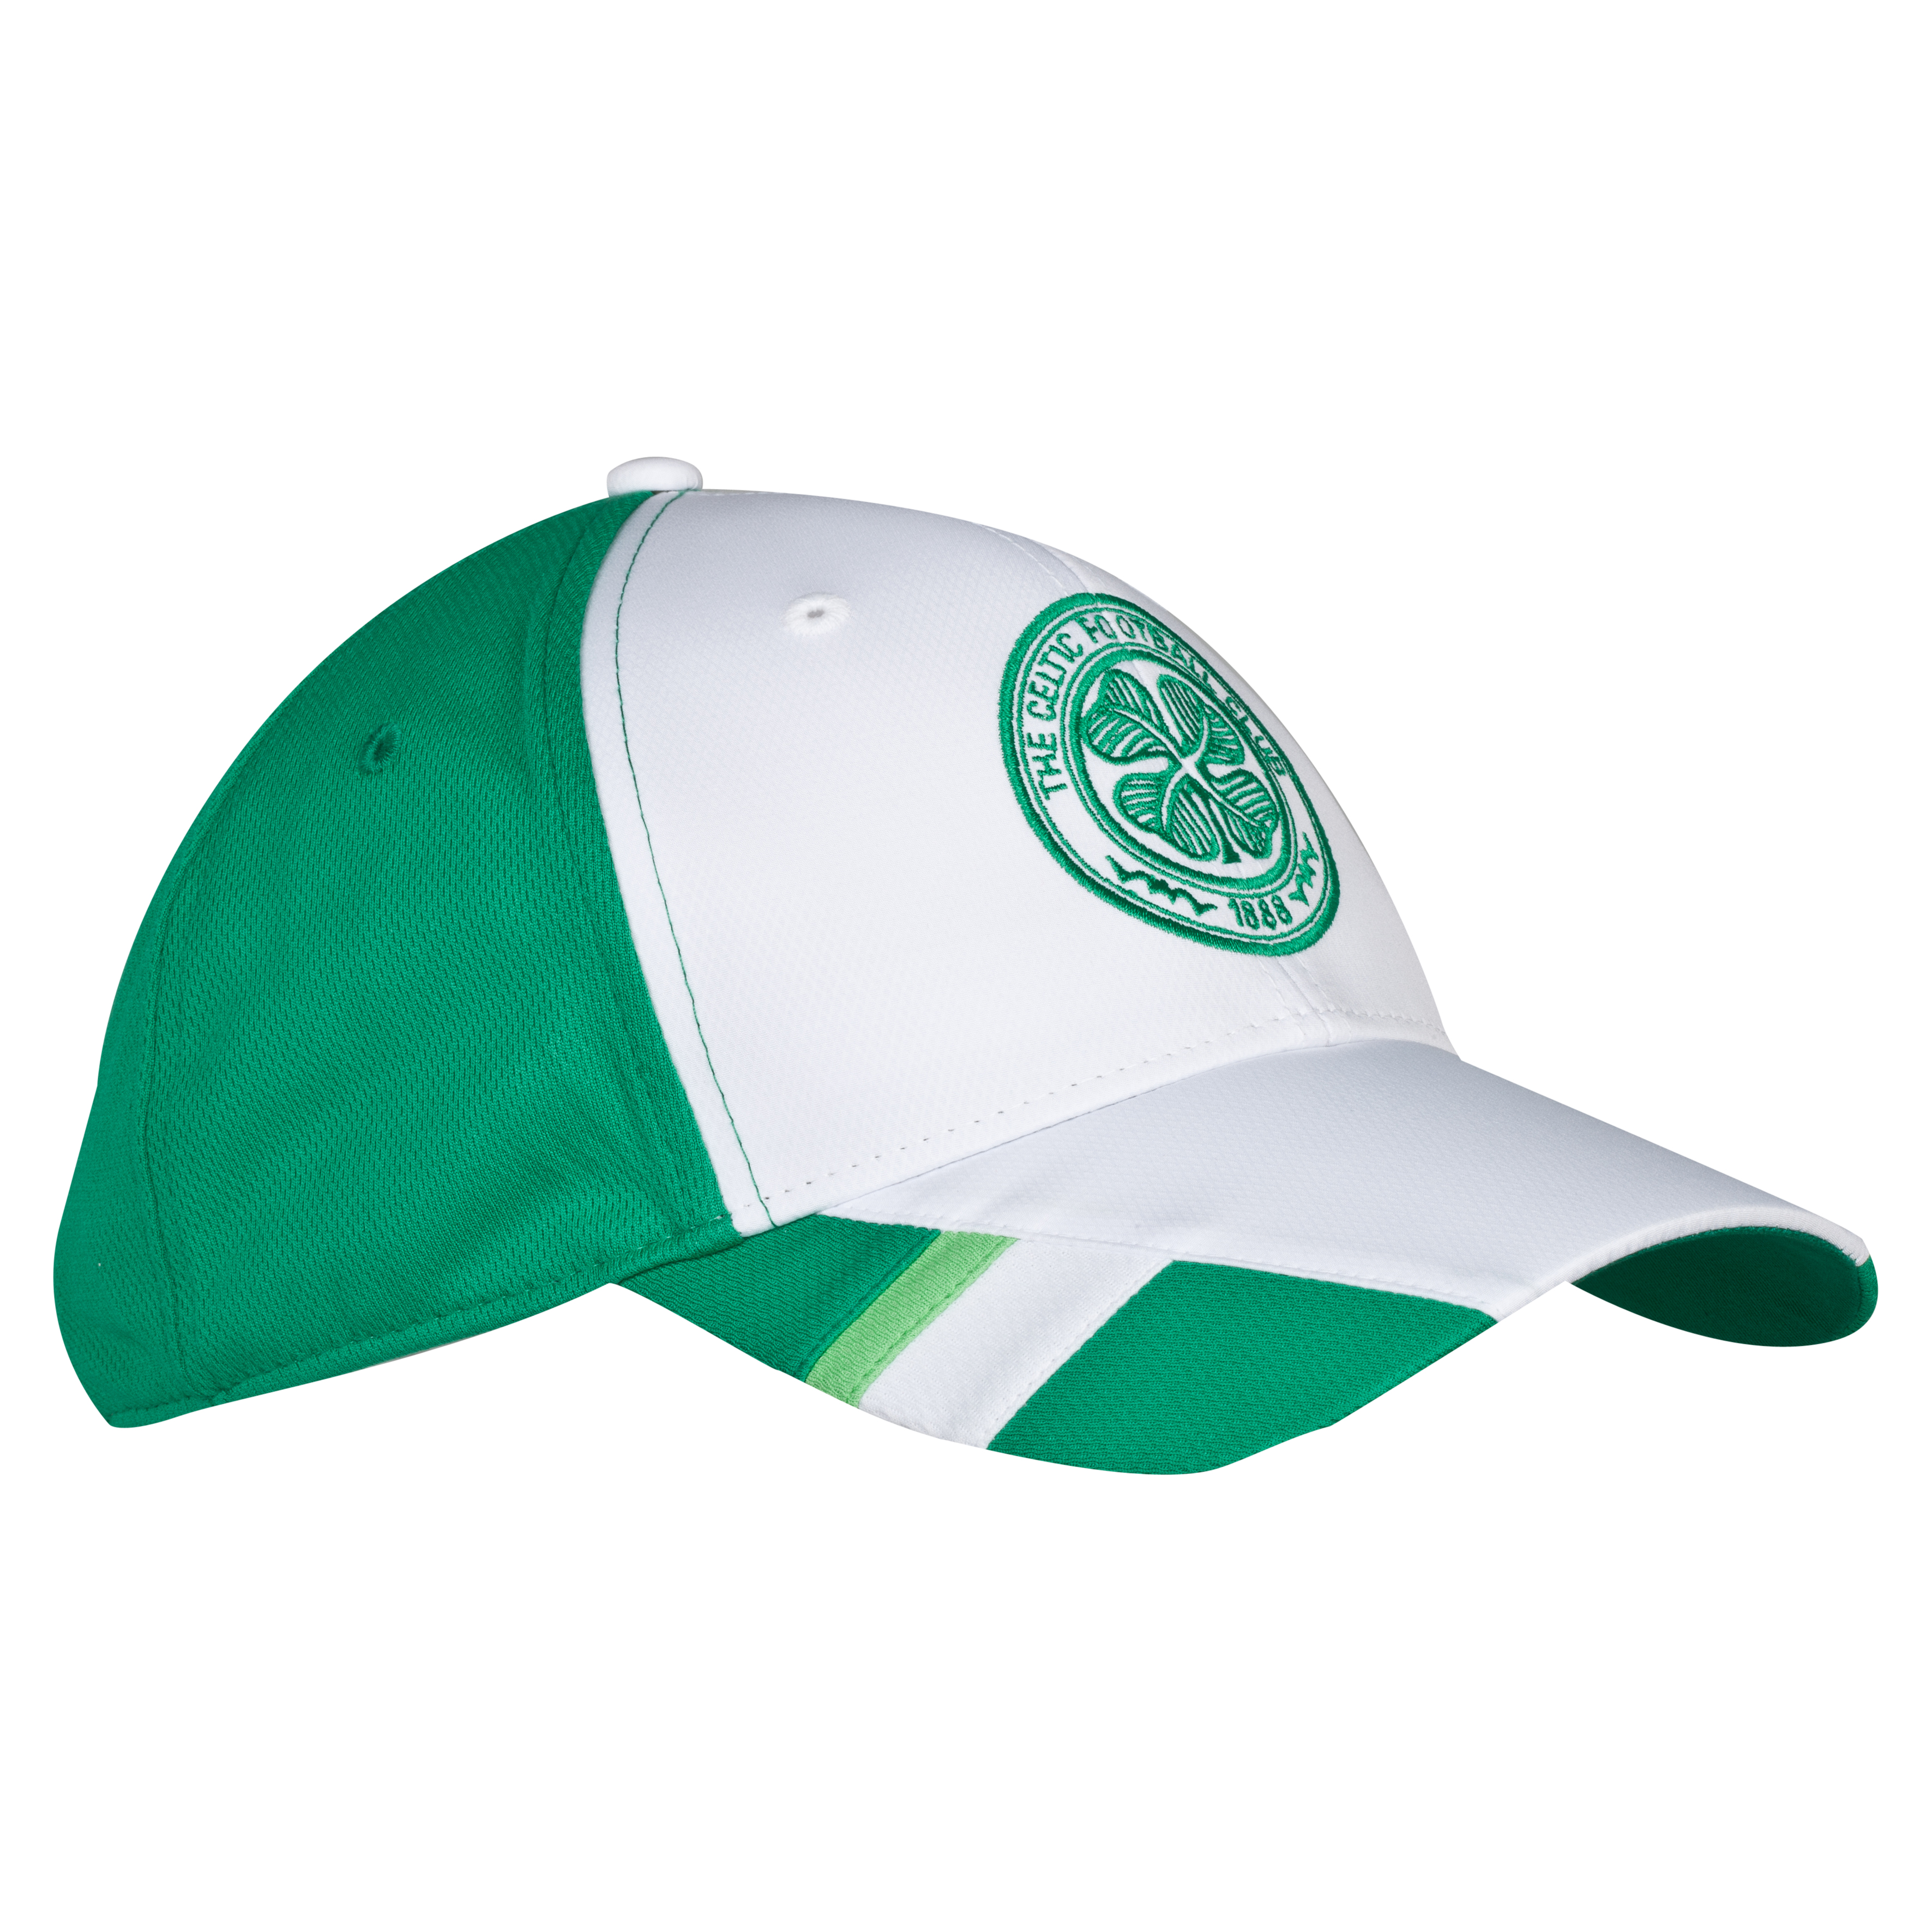 Celtic Contrast Sports Cap - White/Green - Adult